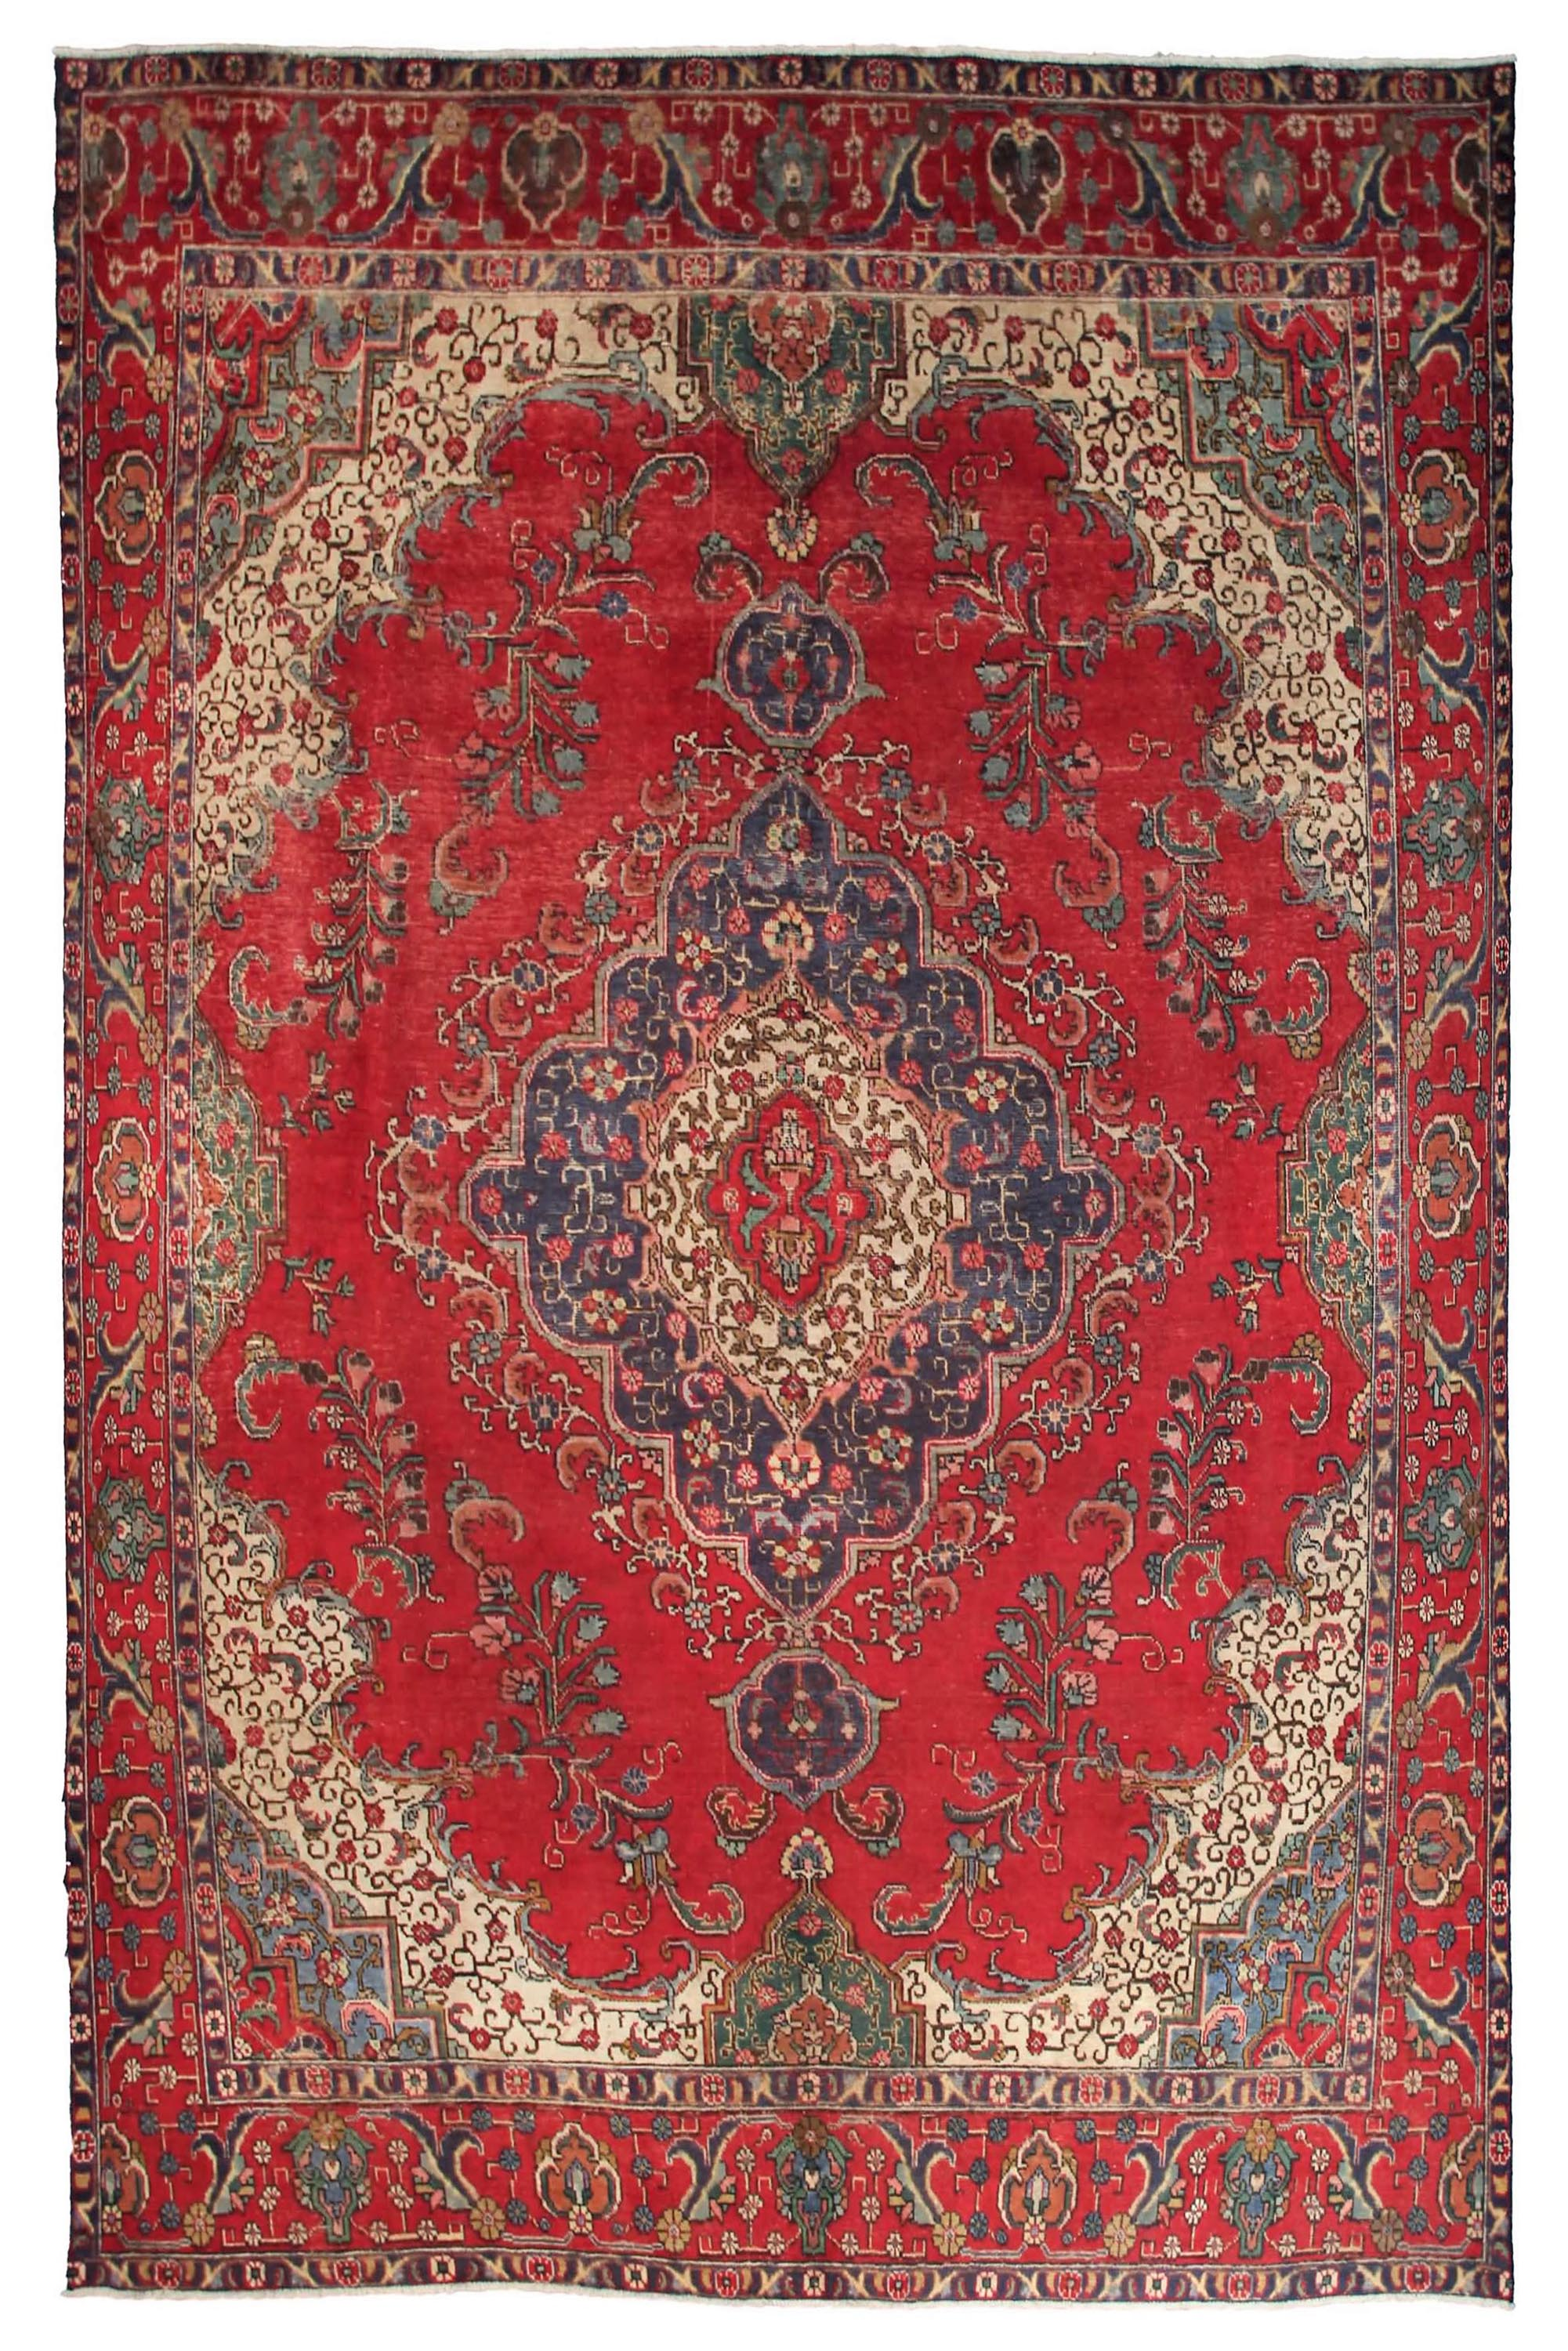 Hand Knotted Antique Tabriz Persian Rug, 296 x 385 cm